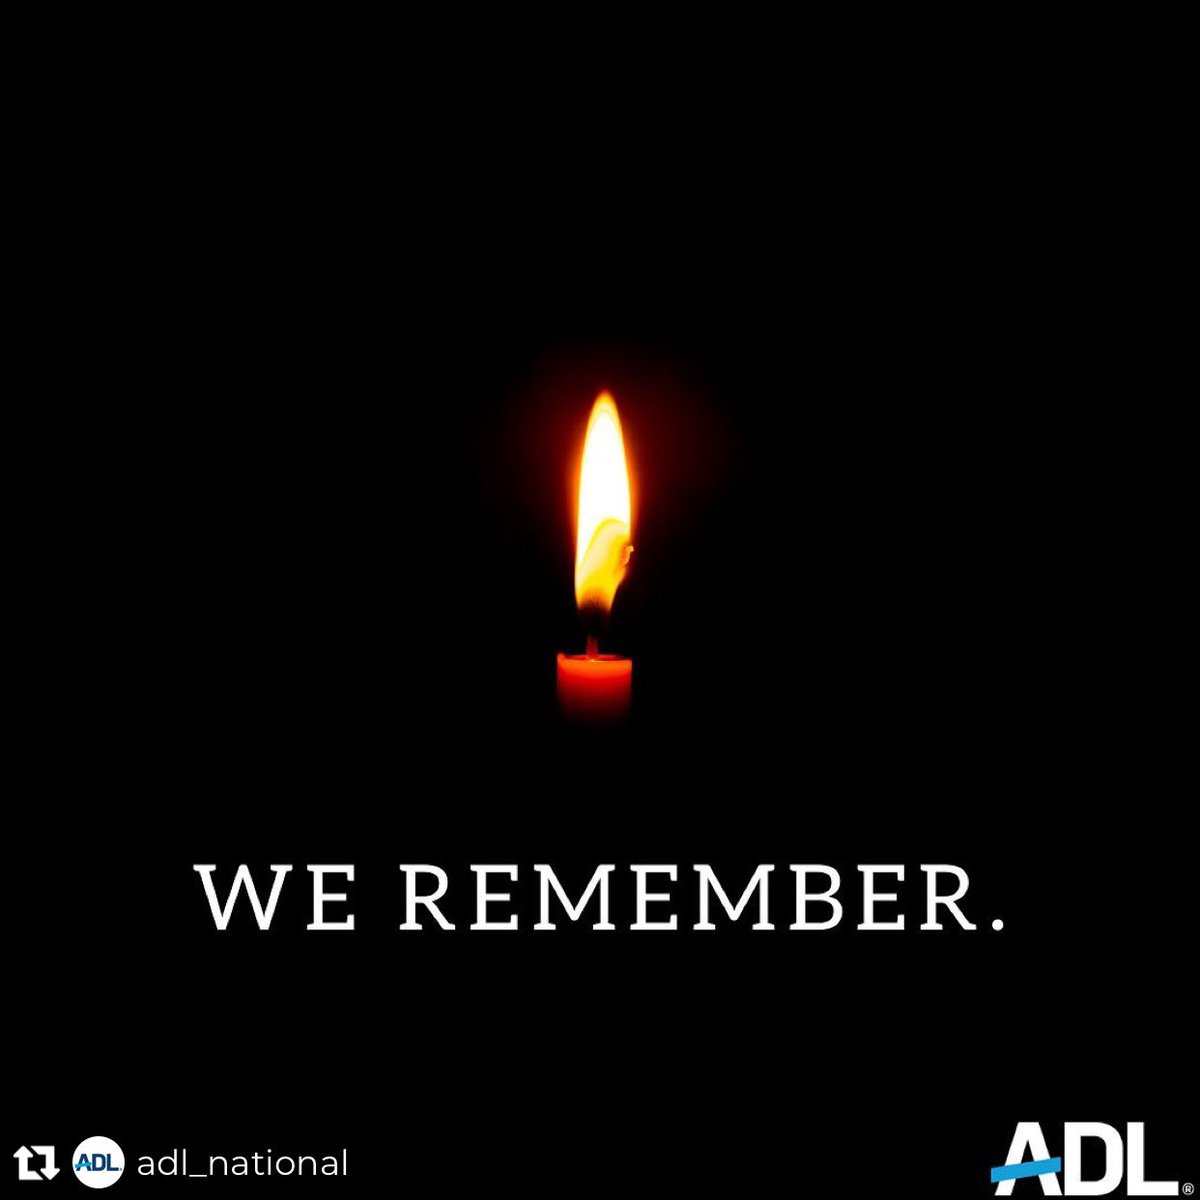 #NeverAgain 🤍-Bellen Repost from @adl_national • As today marks #HolocaustRemembranceDay, we pause and #WeRemember. We remember the millions of innocents who lost their lives. We remember to carry on the stories of survivors. We remember to ensure #NeverAgain